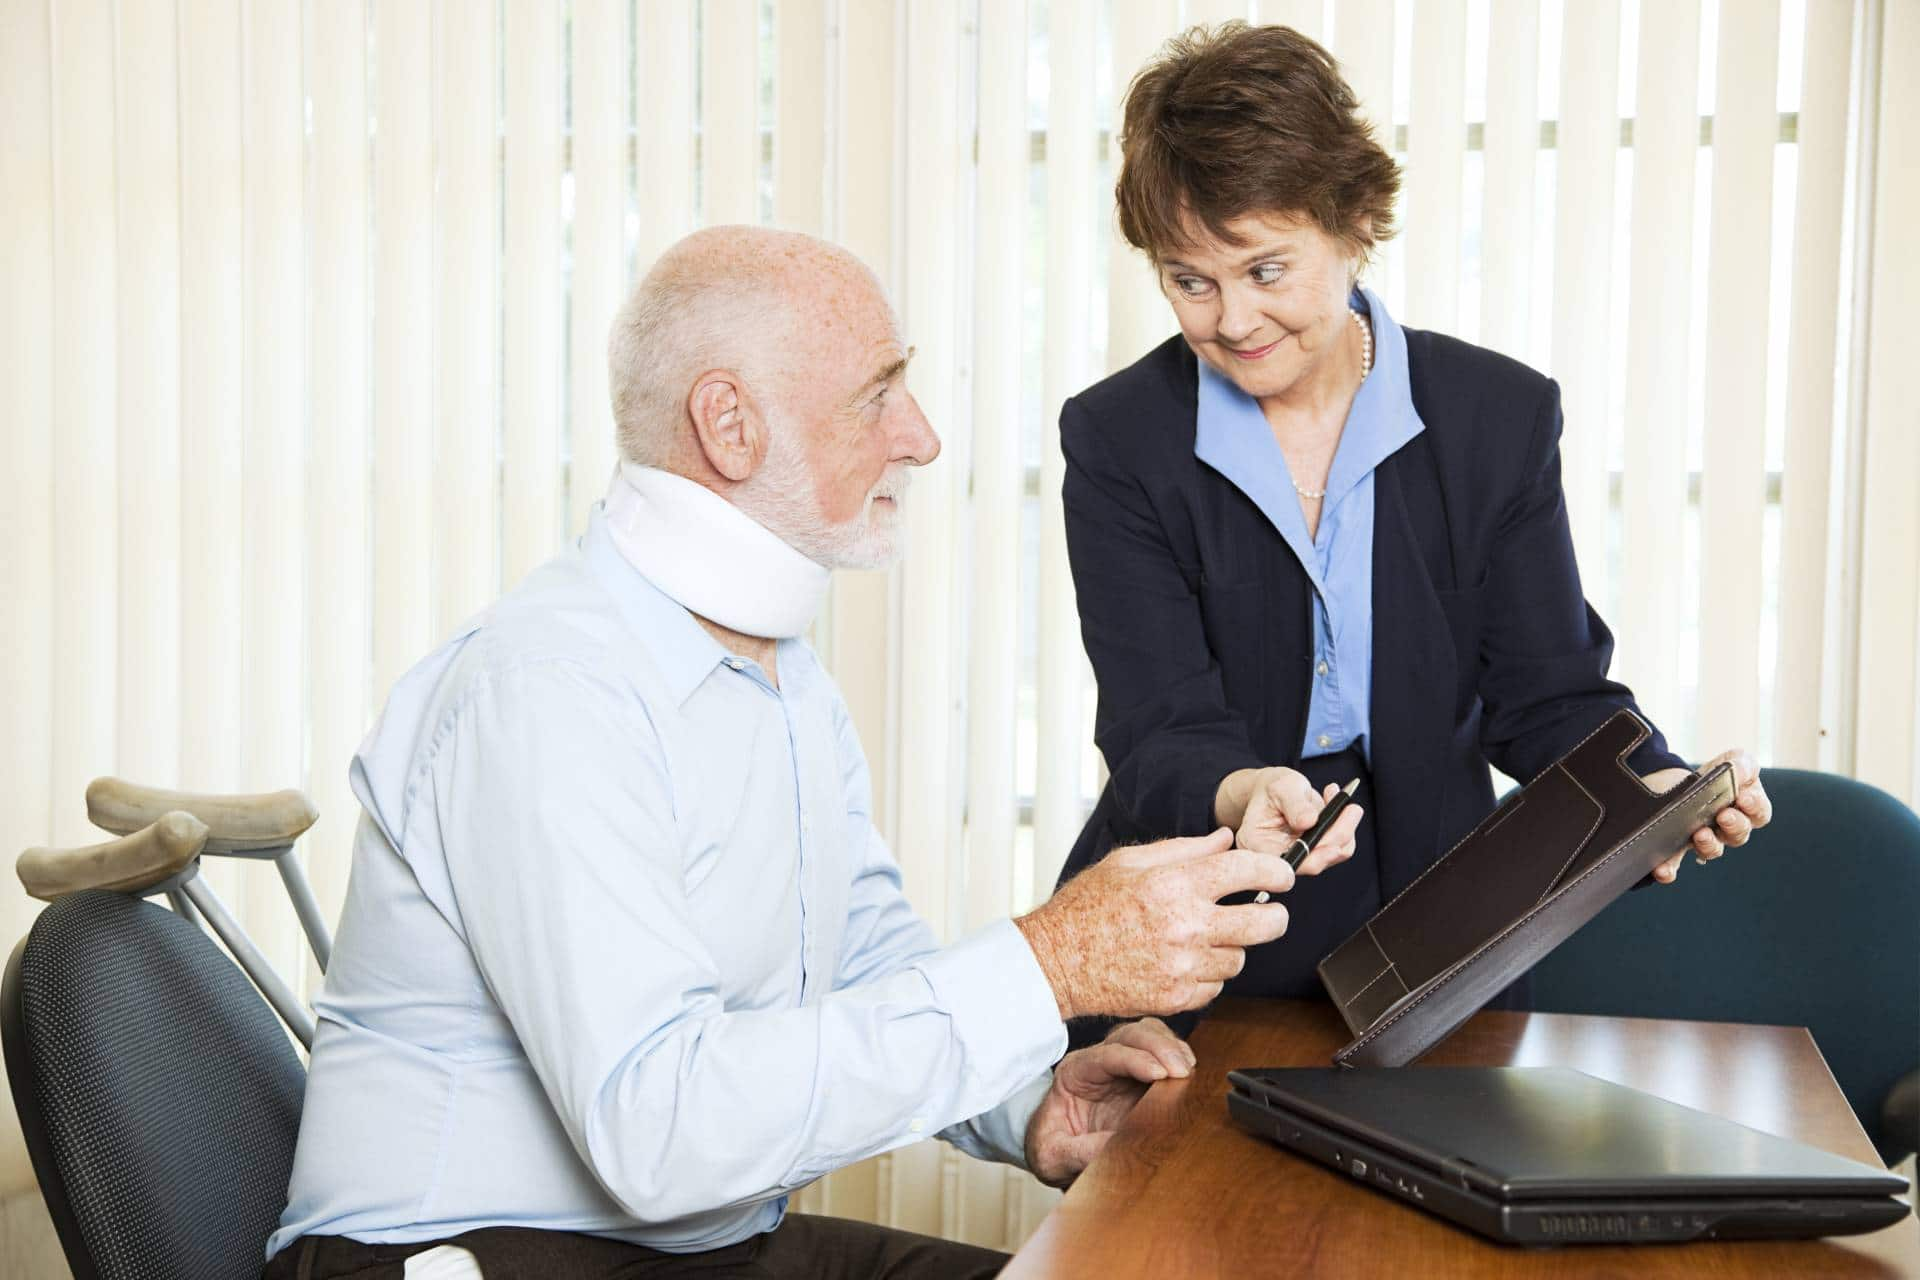 Schedule a free consultation with our personal injury lawyers today at the Angell Law firm in Lindbergh.